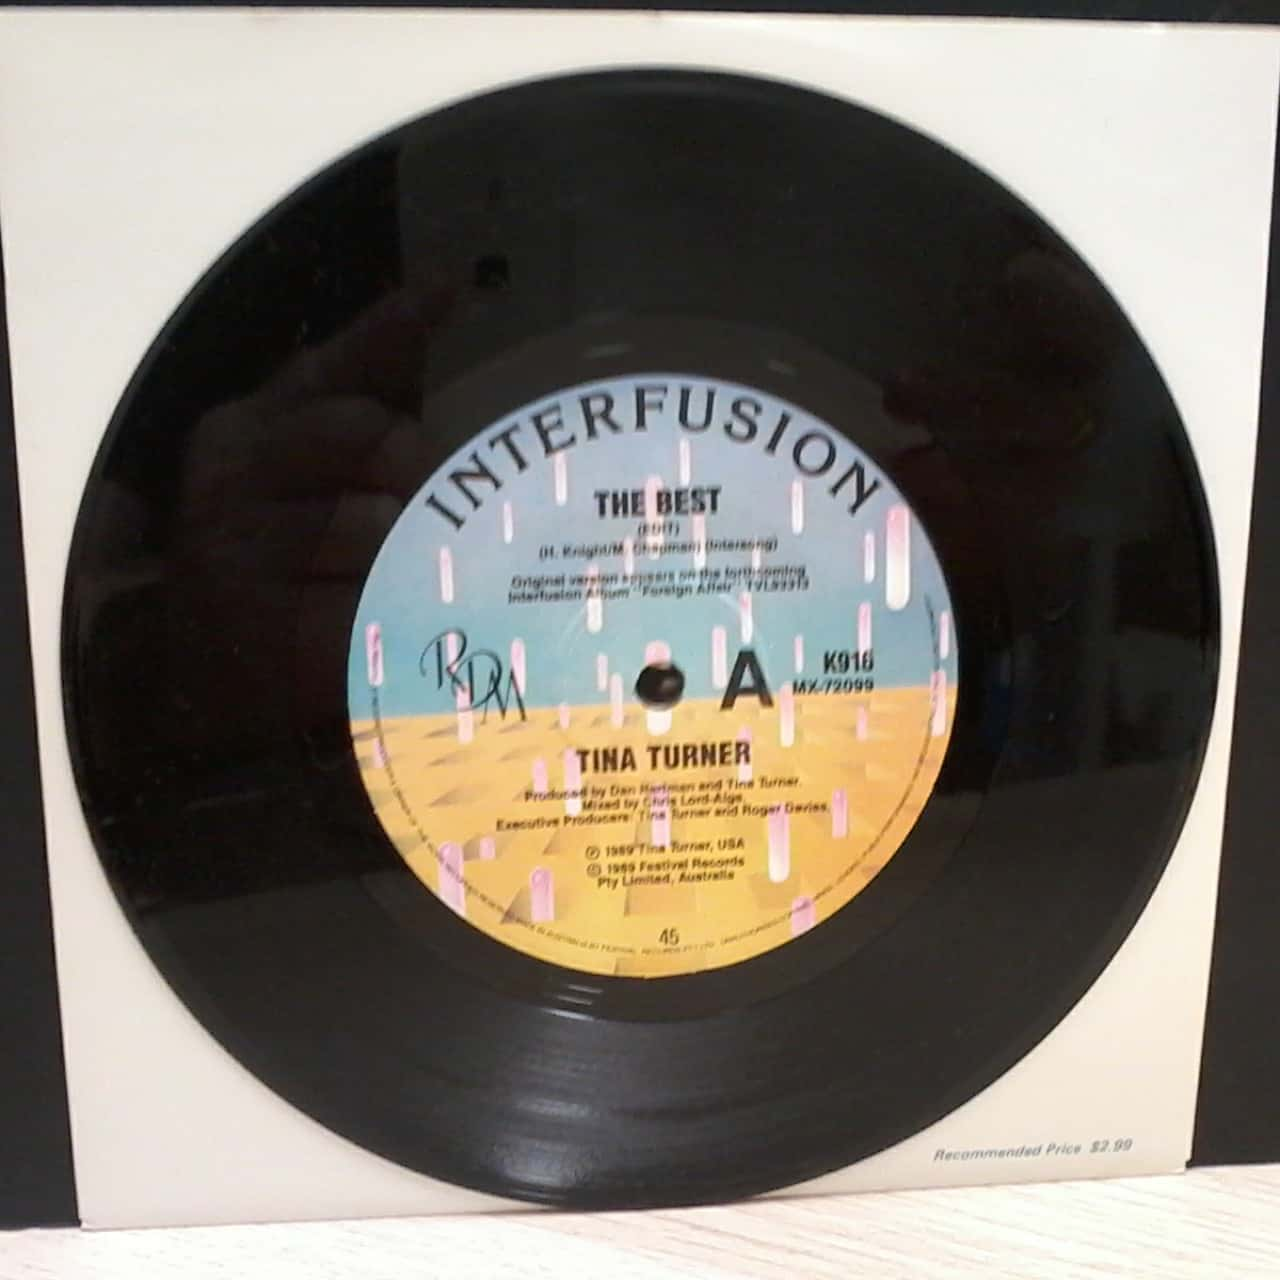 Single Vinyl Record By Tina Turner - The Best